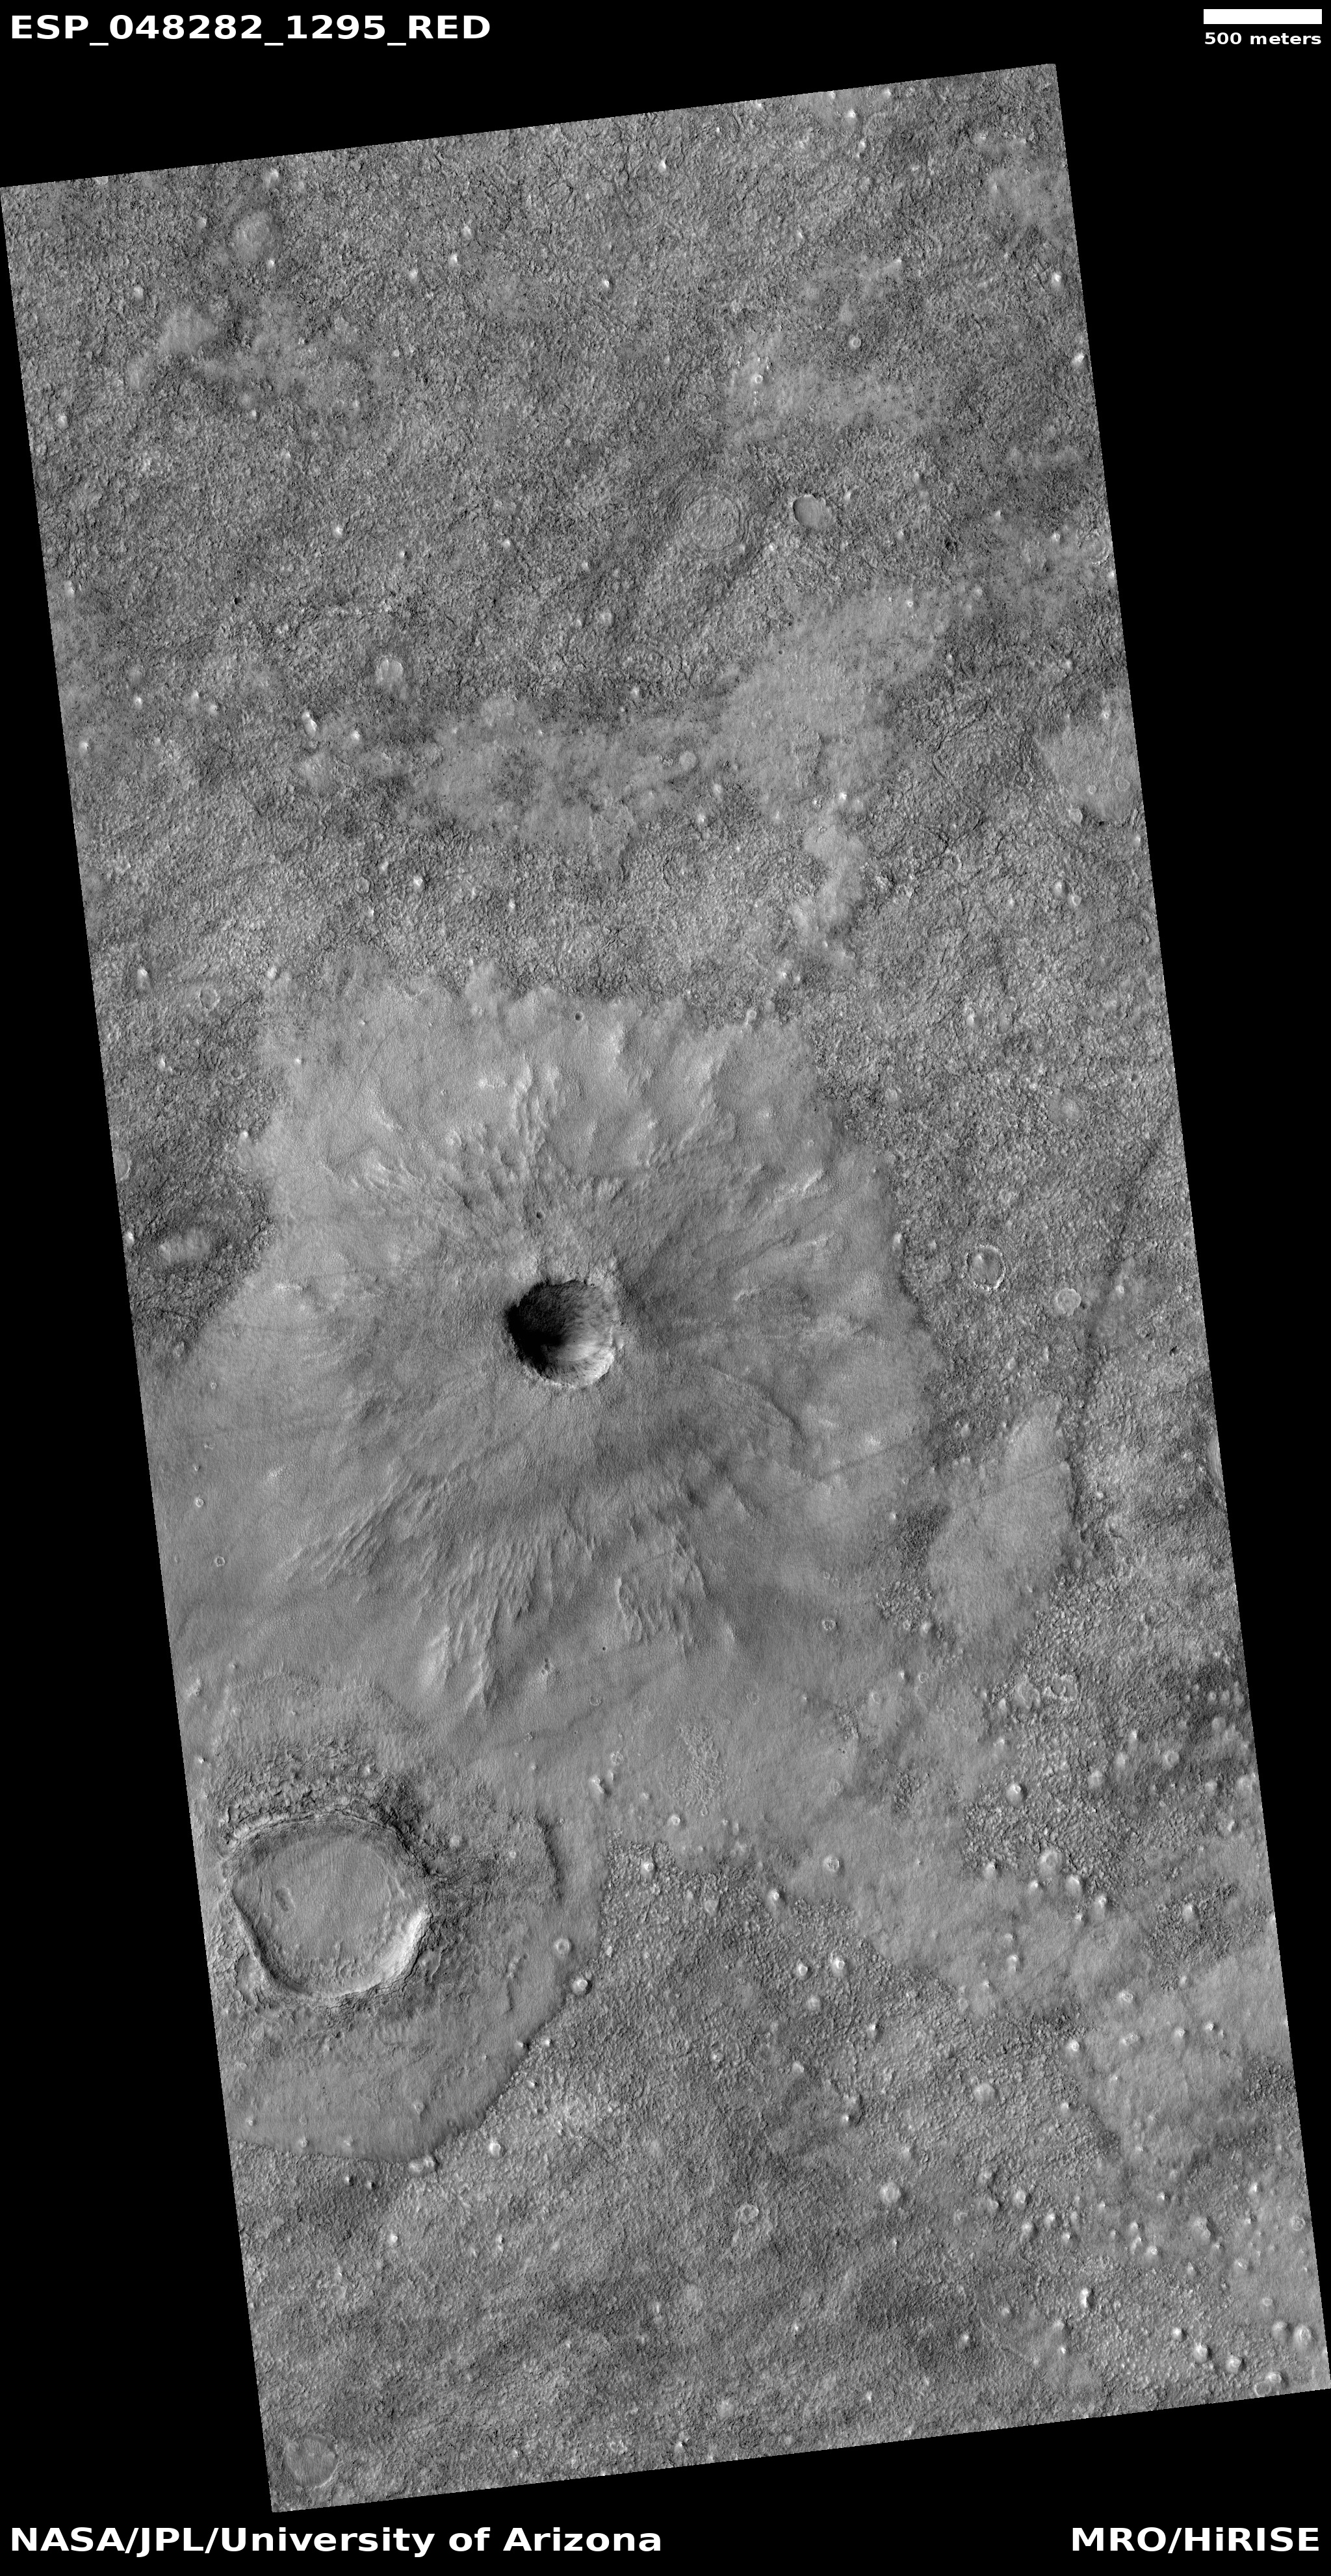 Unnamed crater with thin ejecta There are also many cones visible in the image.